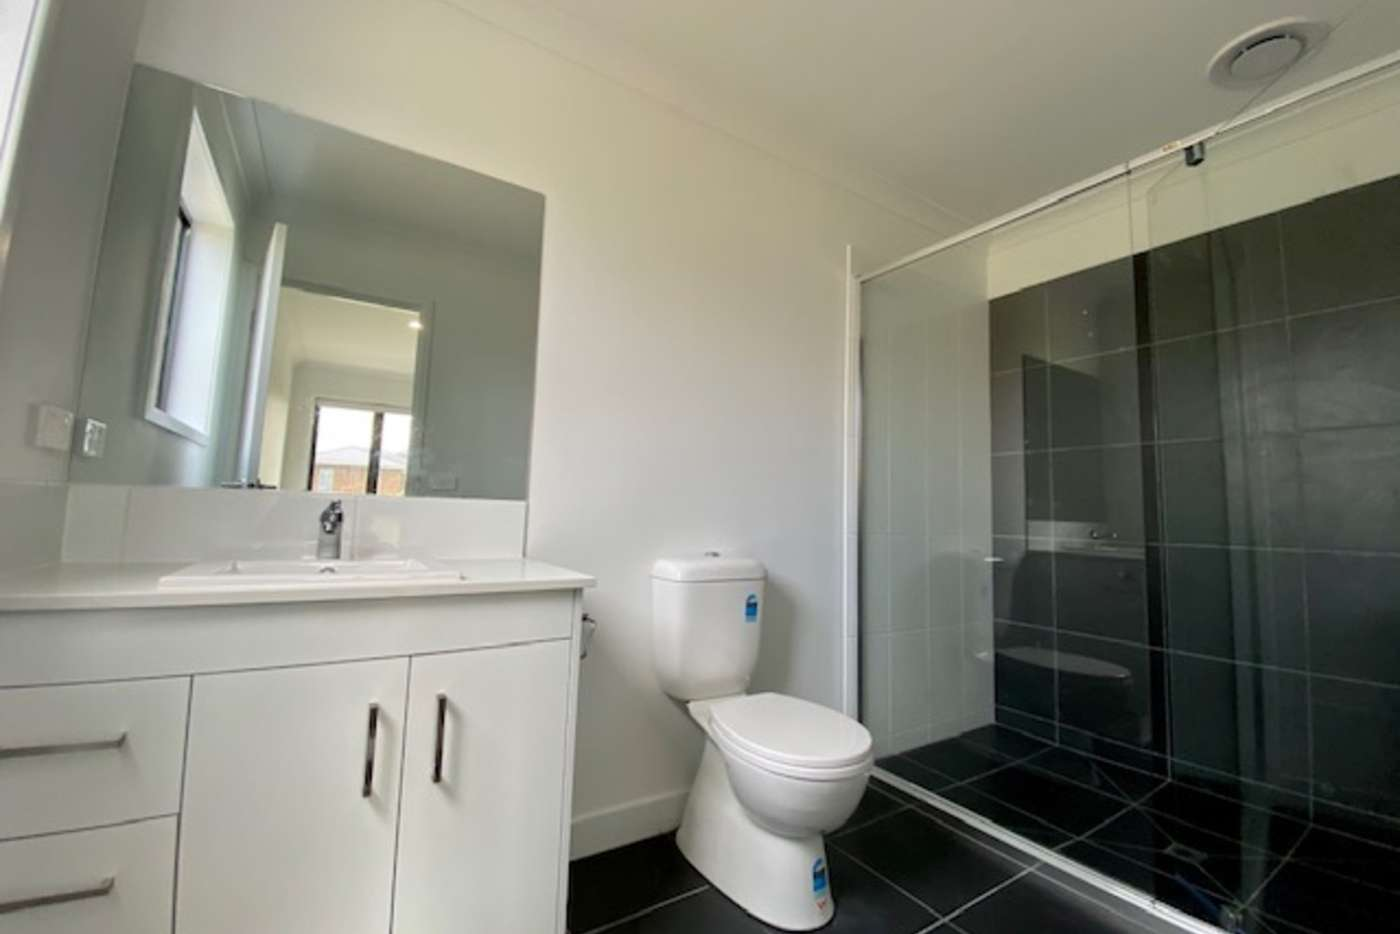 Seventh view of Homely house listing, 482 Casey Fields Boulevard, Cranbourne East VIC 3977